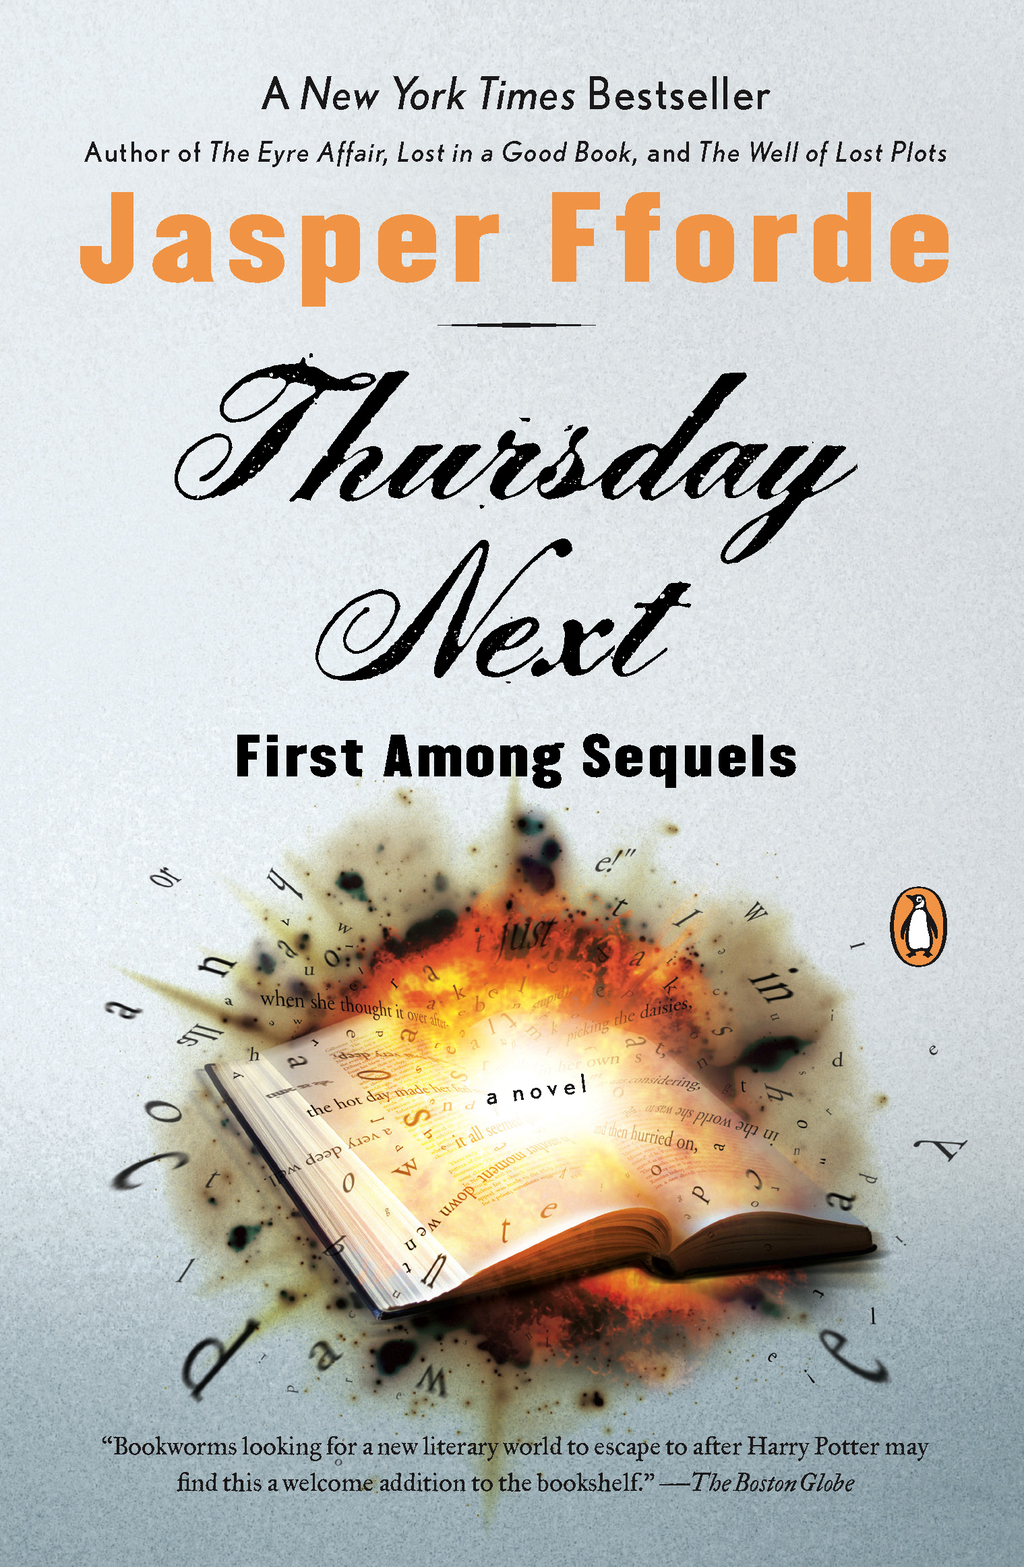 Thursday Next: First Among Sequels: A Thursday Next Novel By: Jasper Fforde